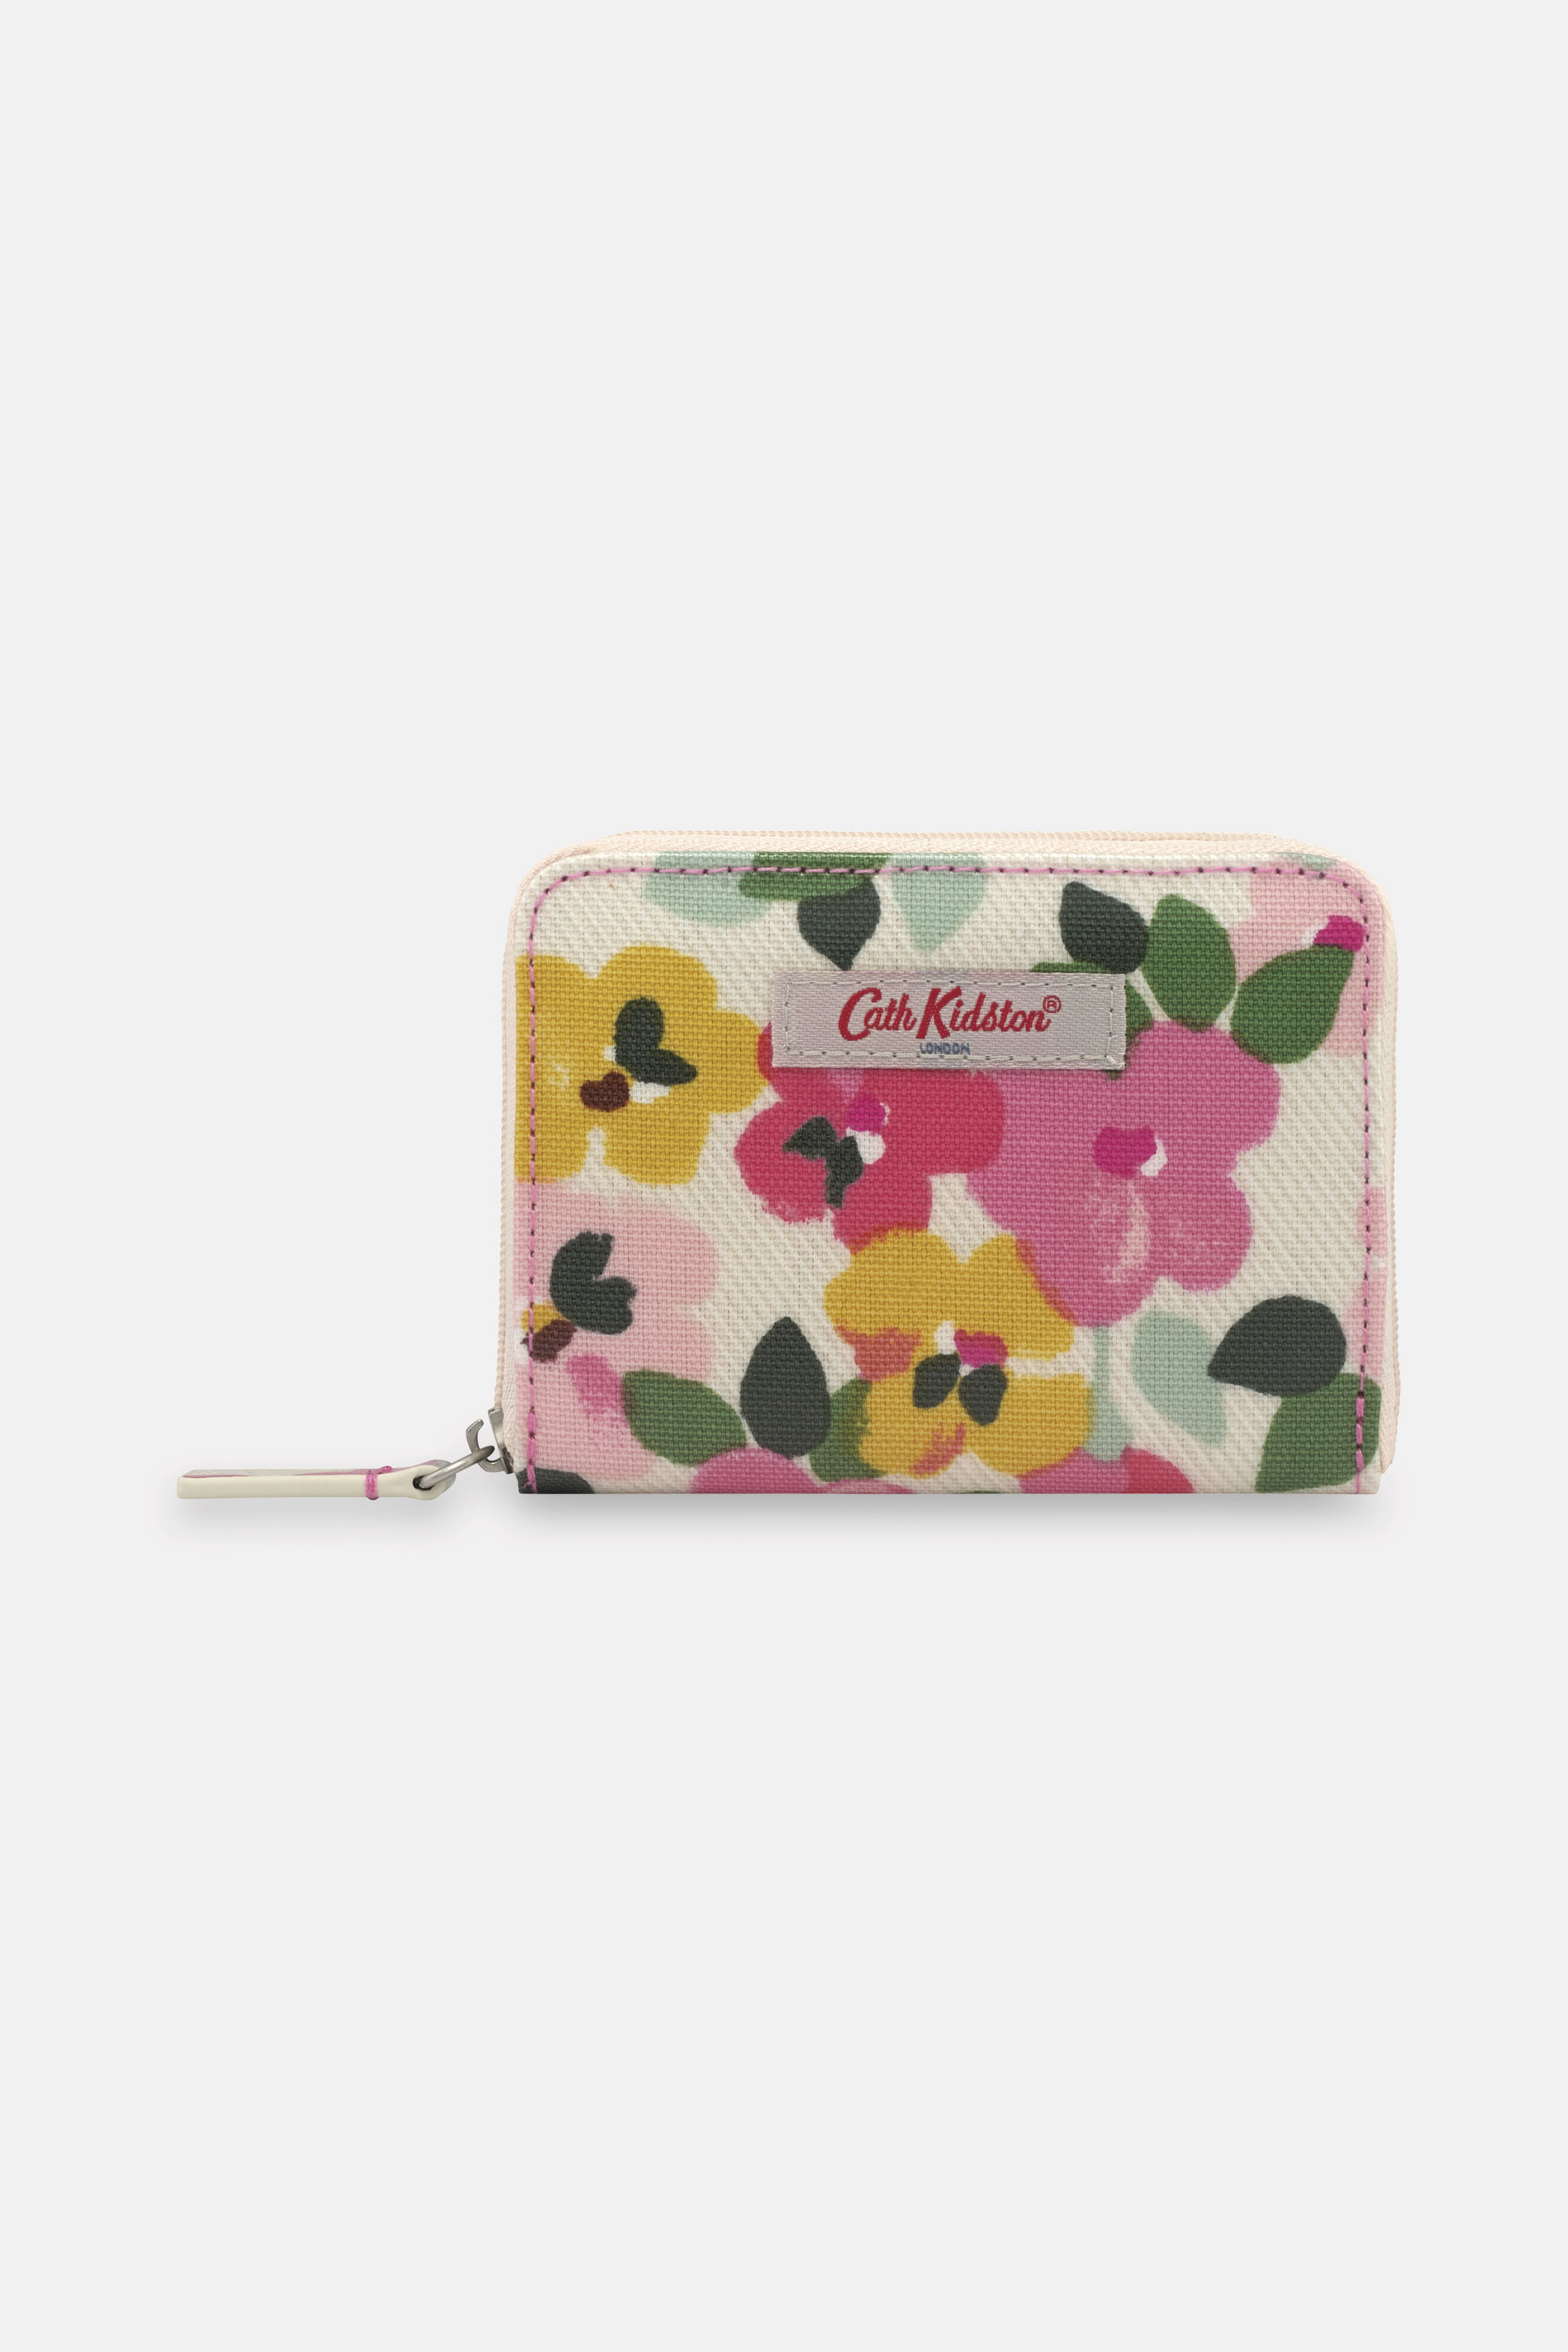 Cath Kidston Mini Continental Zip Wallet in Cream, Large Painted Pansies, 100% PVC Coated Cotton